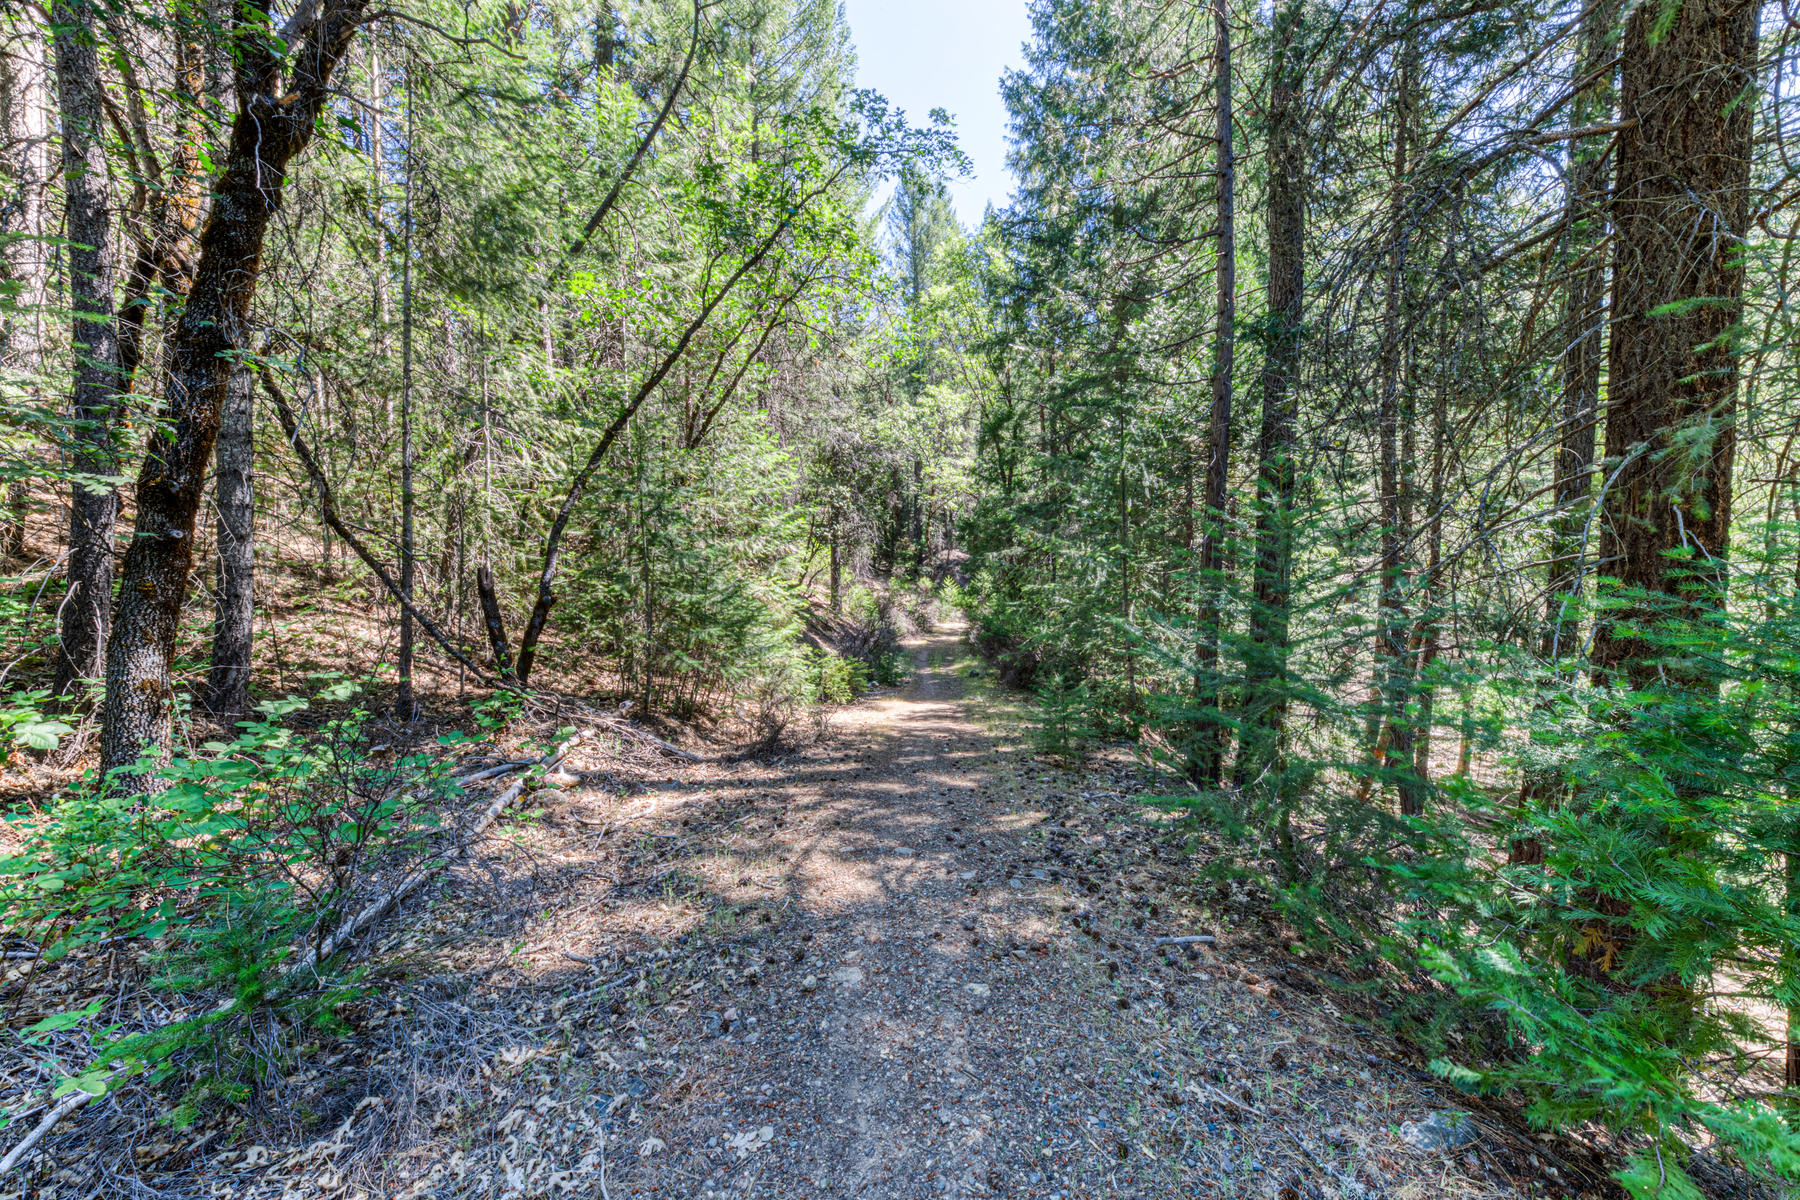 Additional photo for property listing at 37655 Round House Rd. Keddie, CA 95971 37655 Round House Rd. Quincy, California 95971 United States